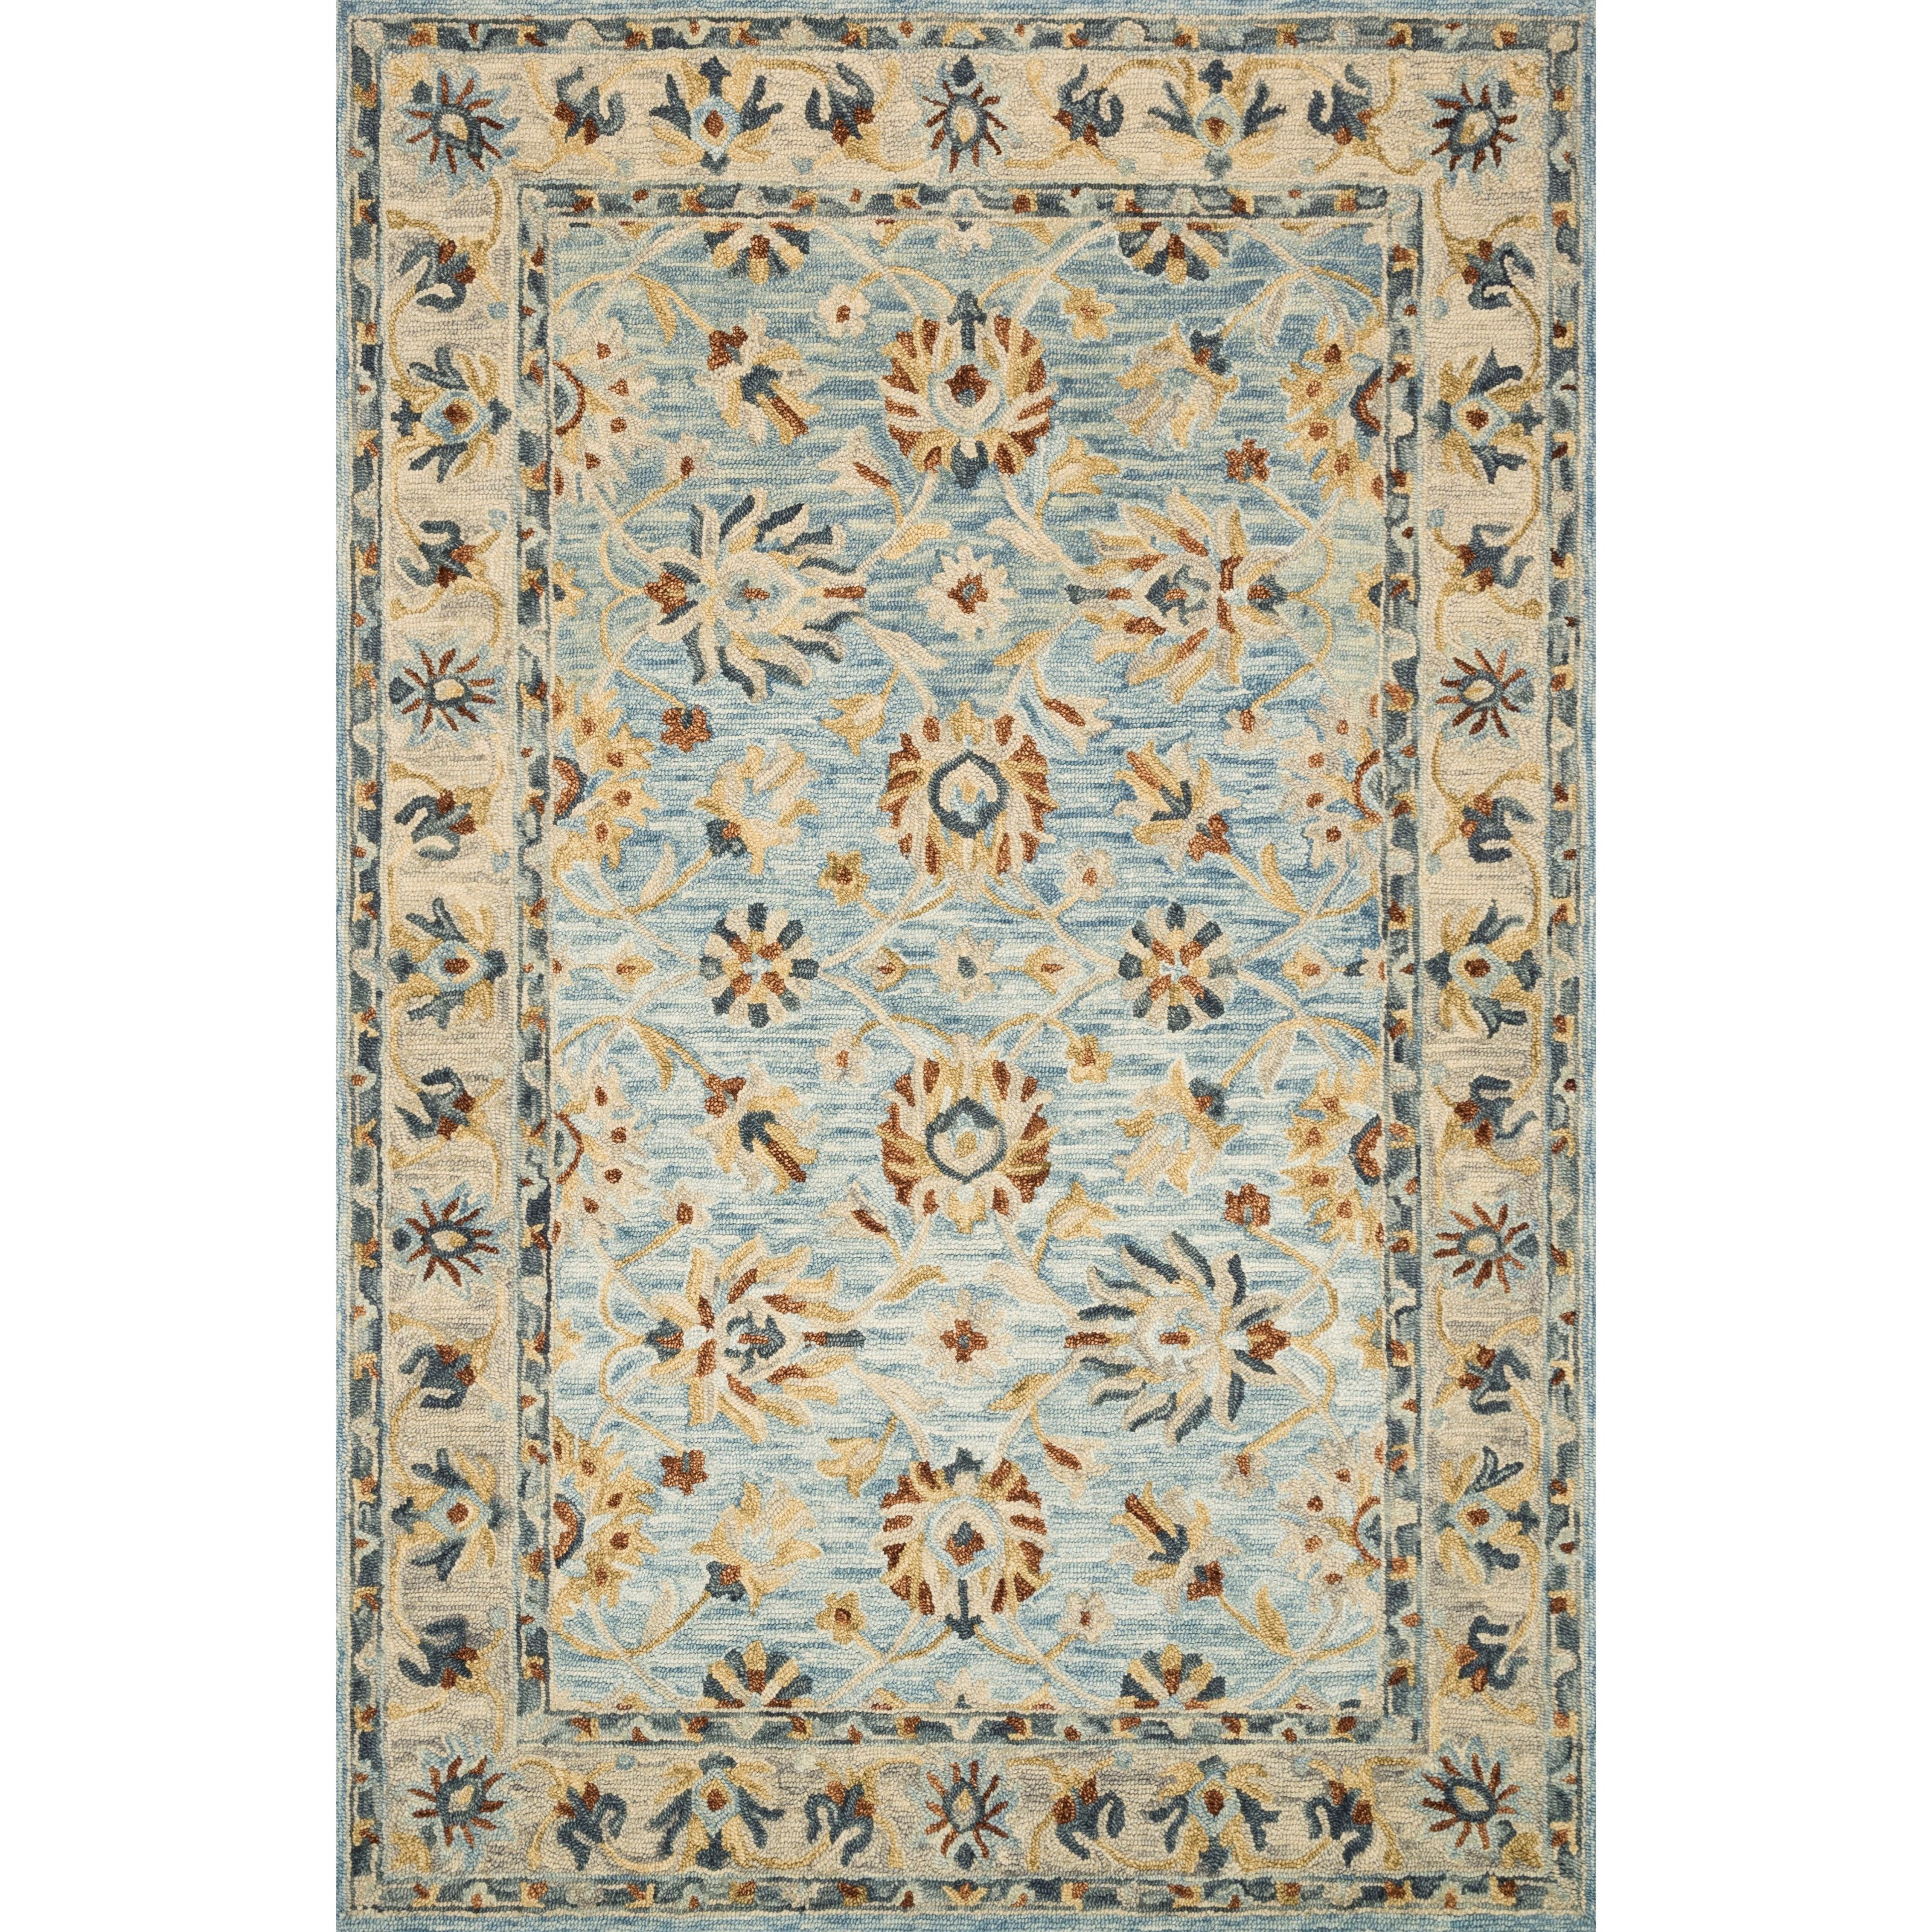 """Victoria 9'3"""" x 13' Lt. Blue / Natural Rug by Loloi Rugs at Virginia Furniture Market"""